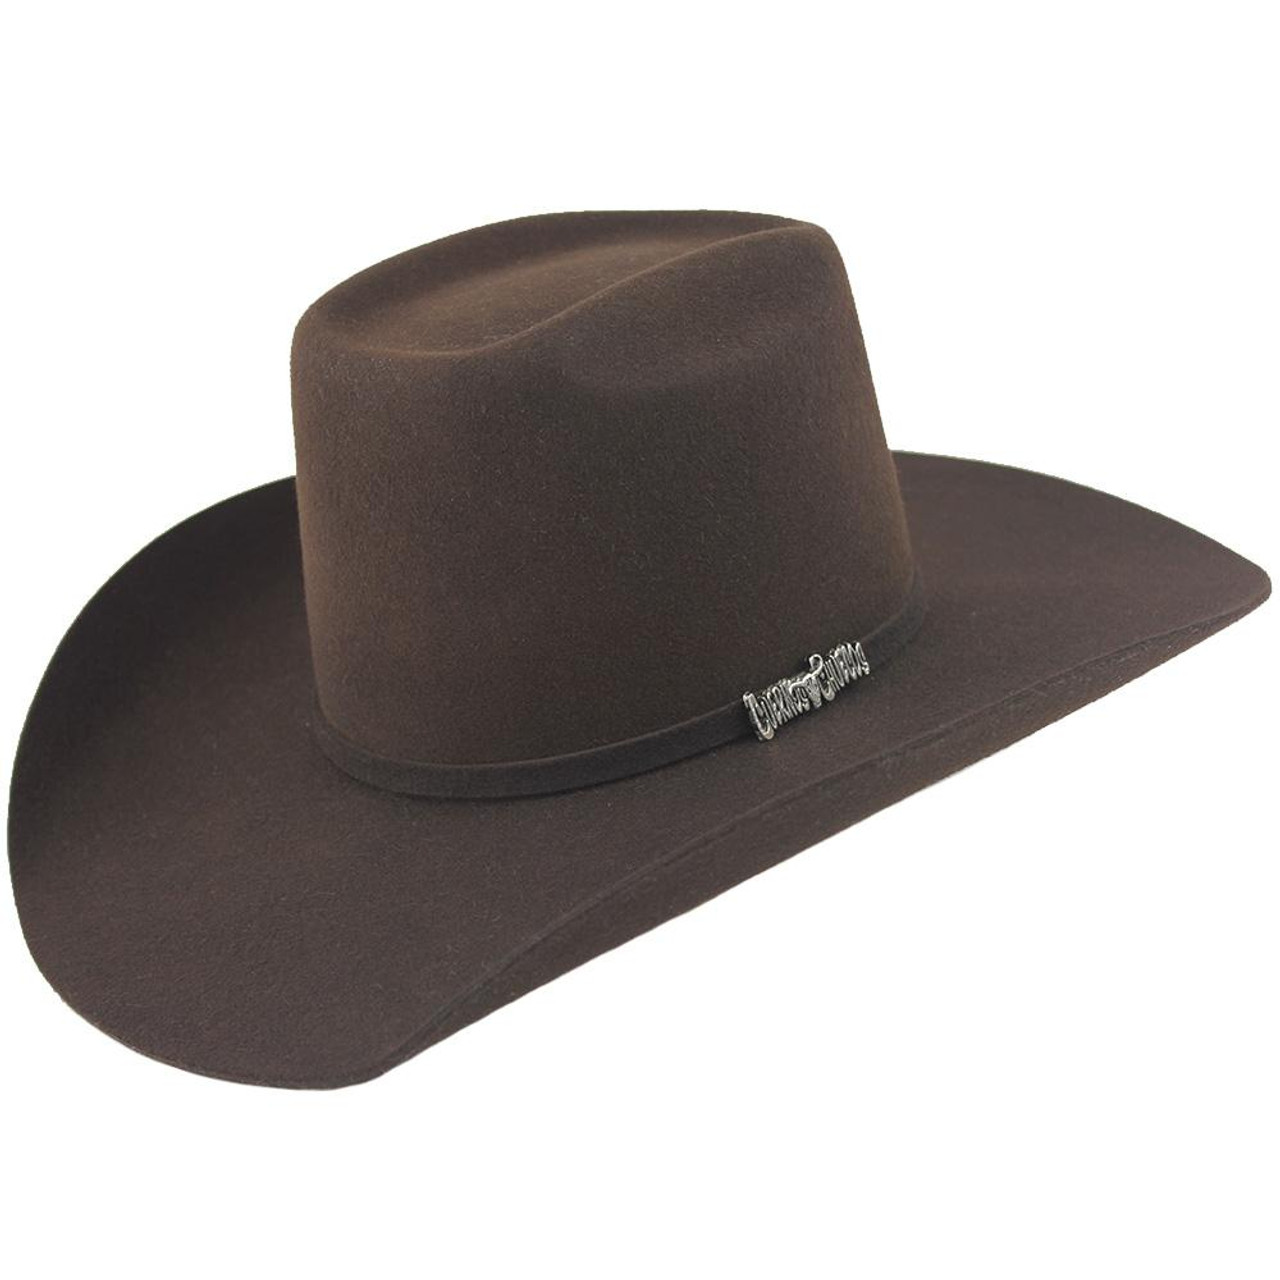 d6767b4c90477 Cuernos Chuecos Chocolate 6X Brick Crown Felt Hat - Warehouse ...